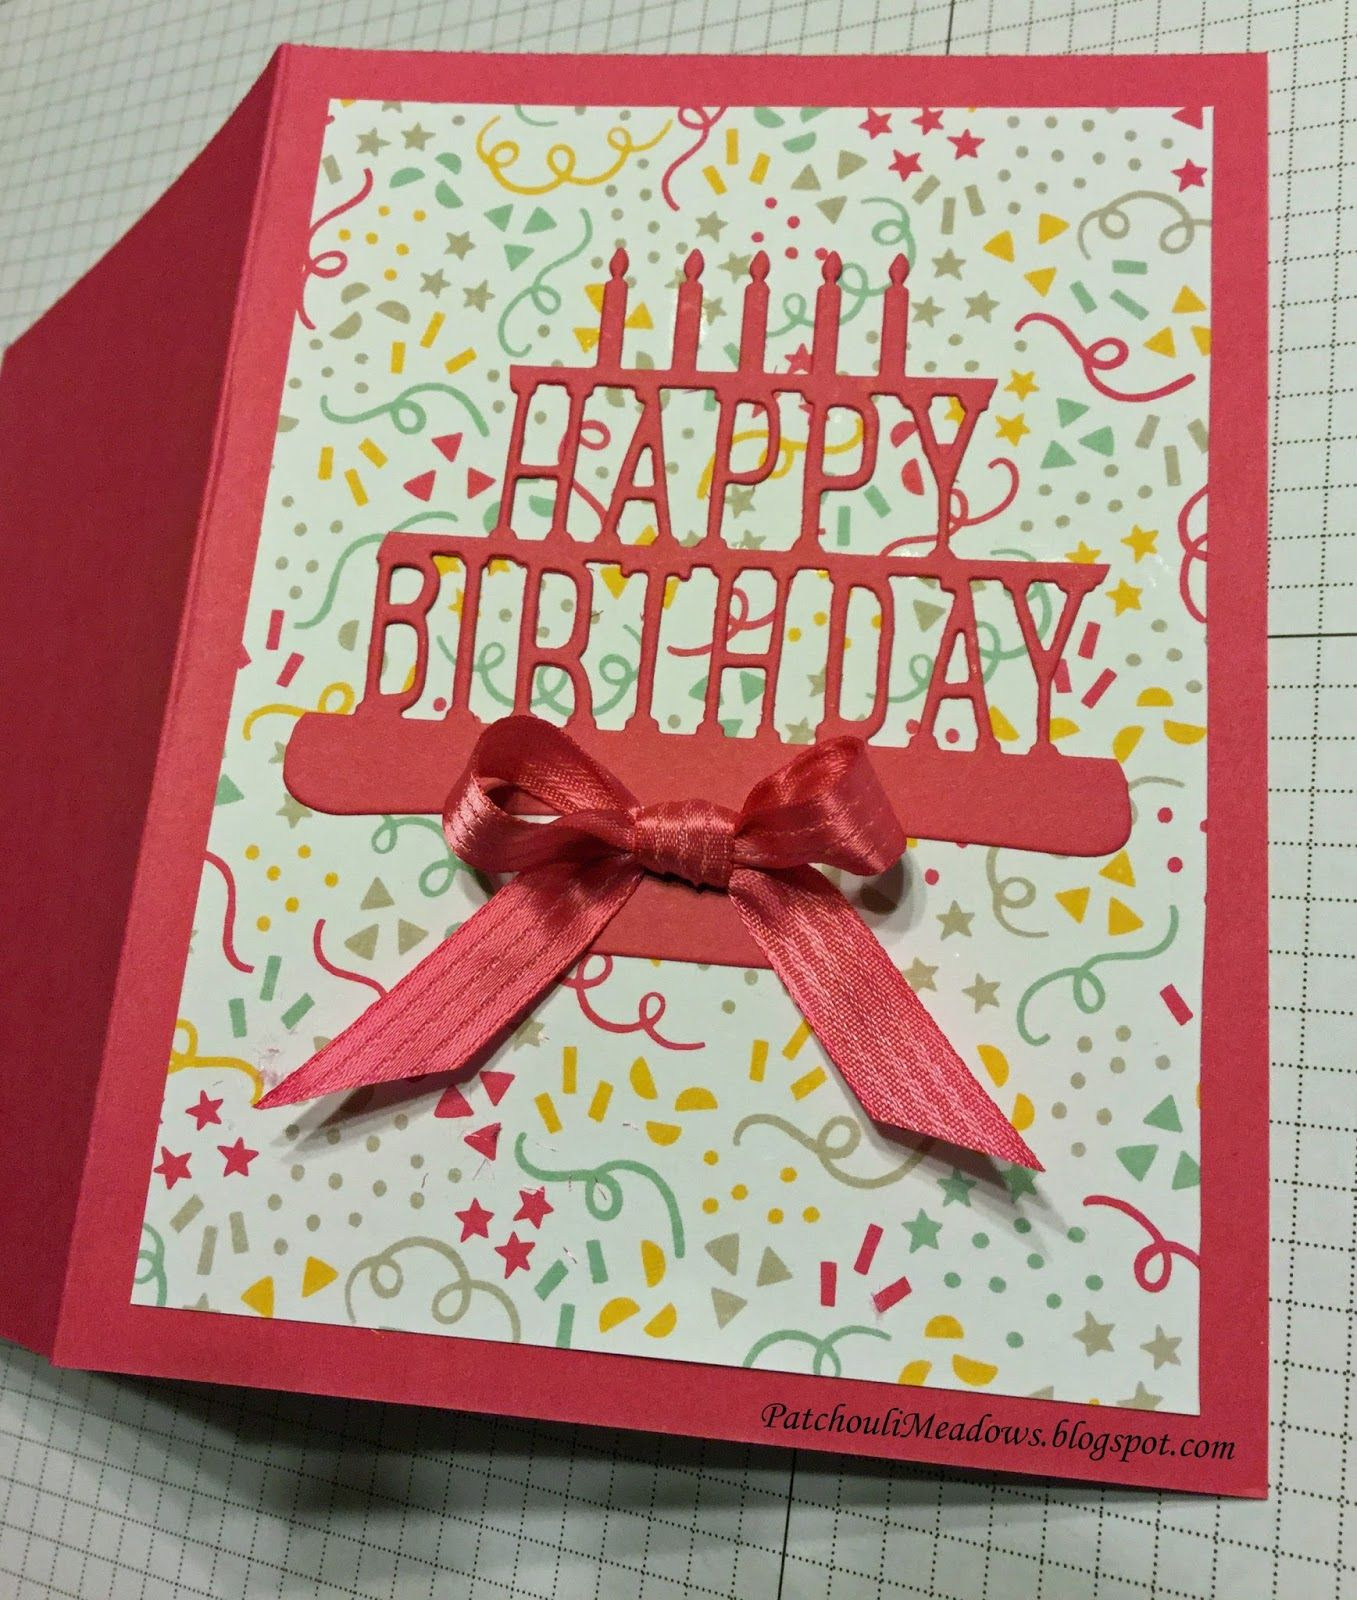 Patchouli meadows birthday cards pinterest party pops cards